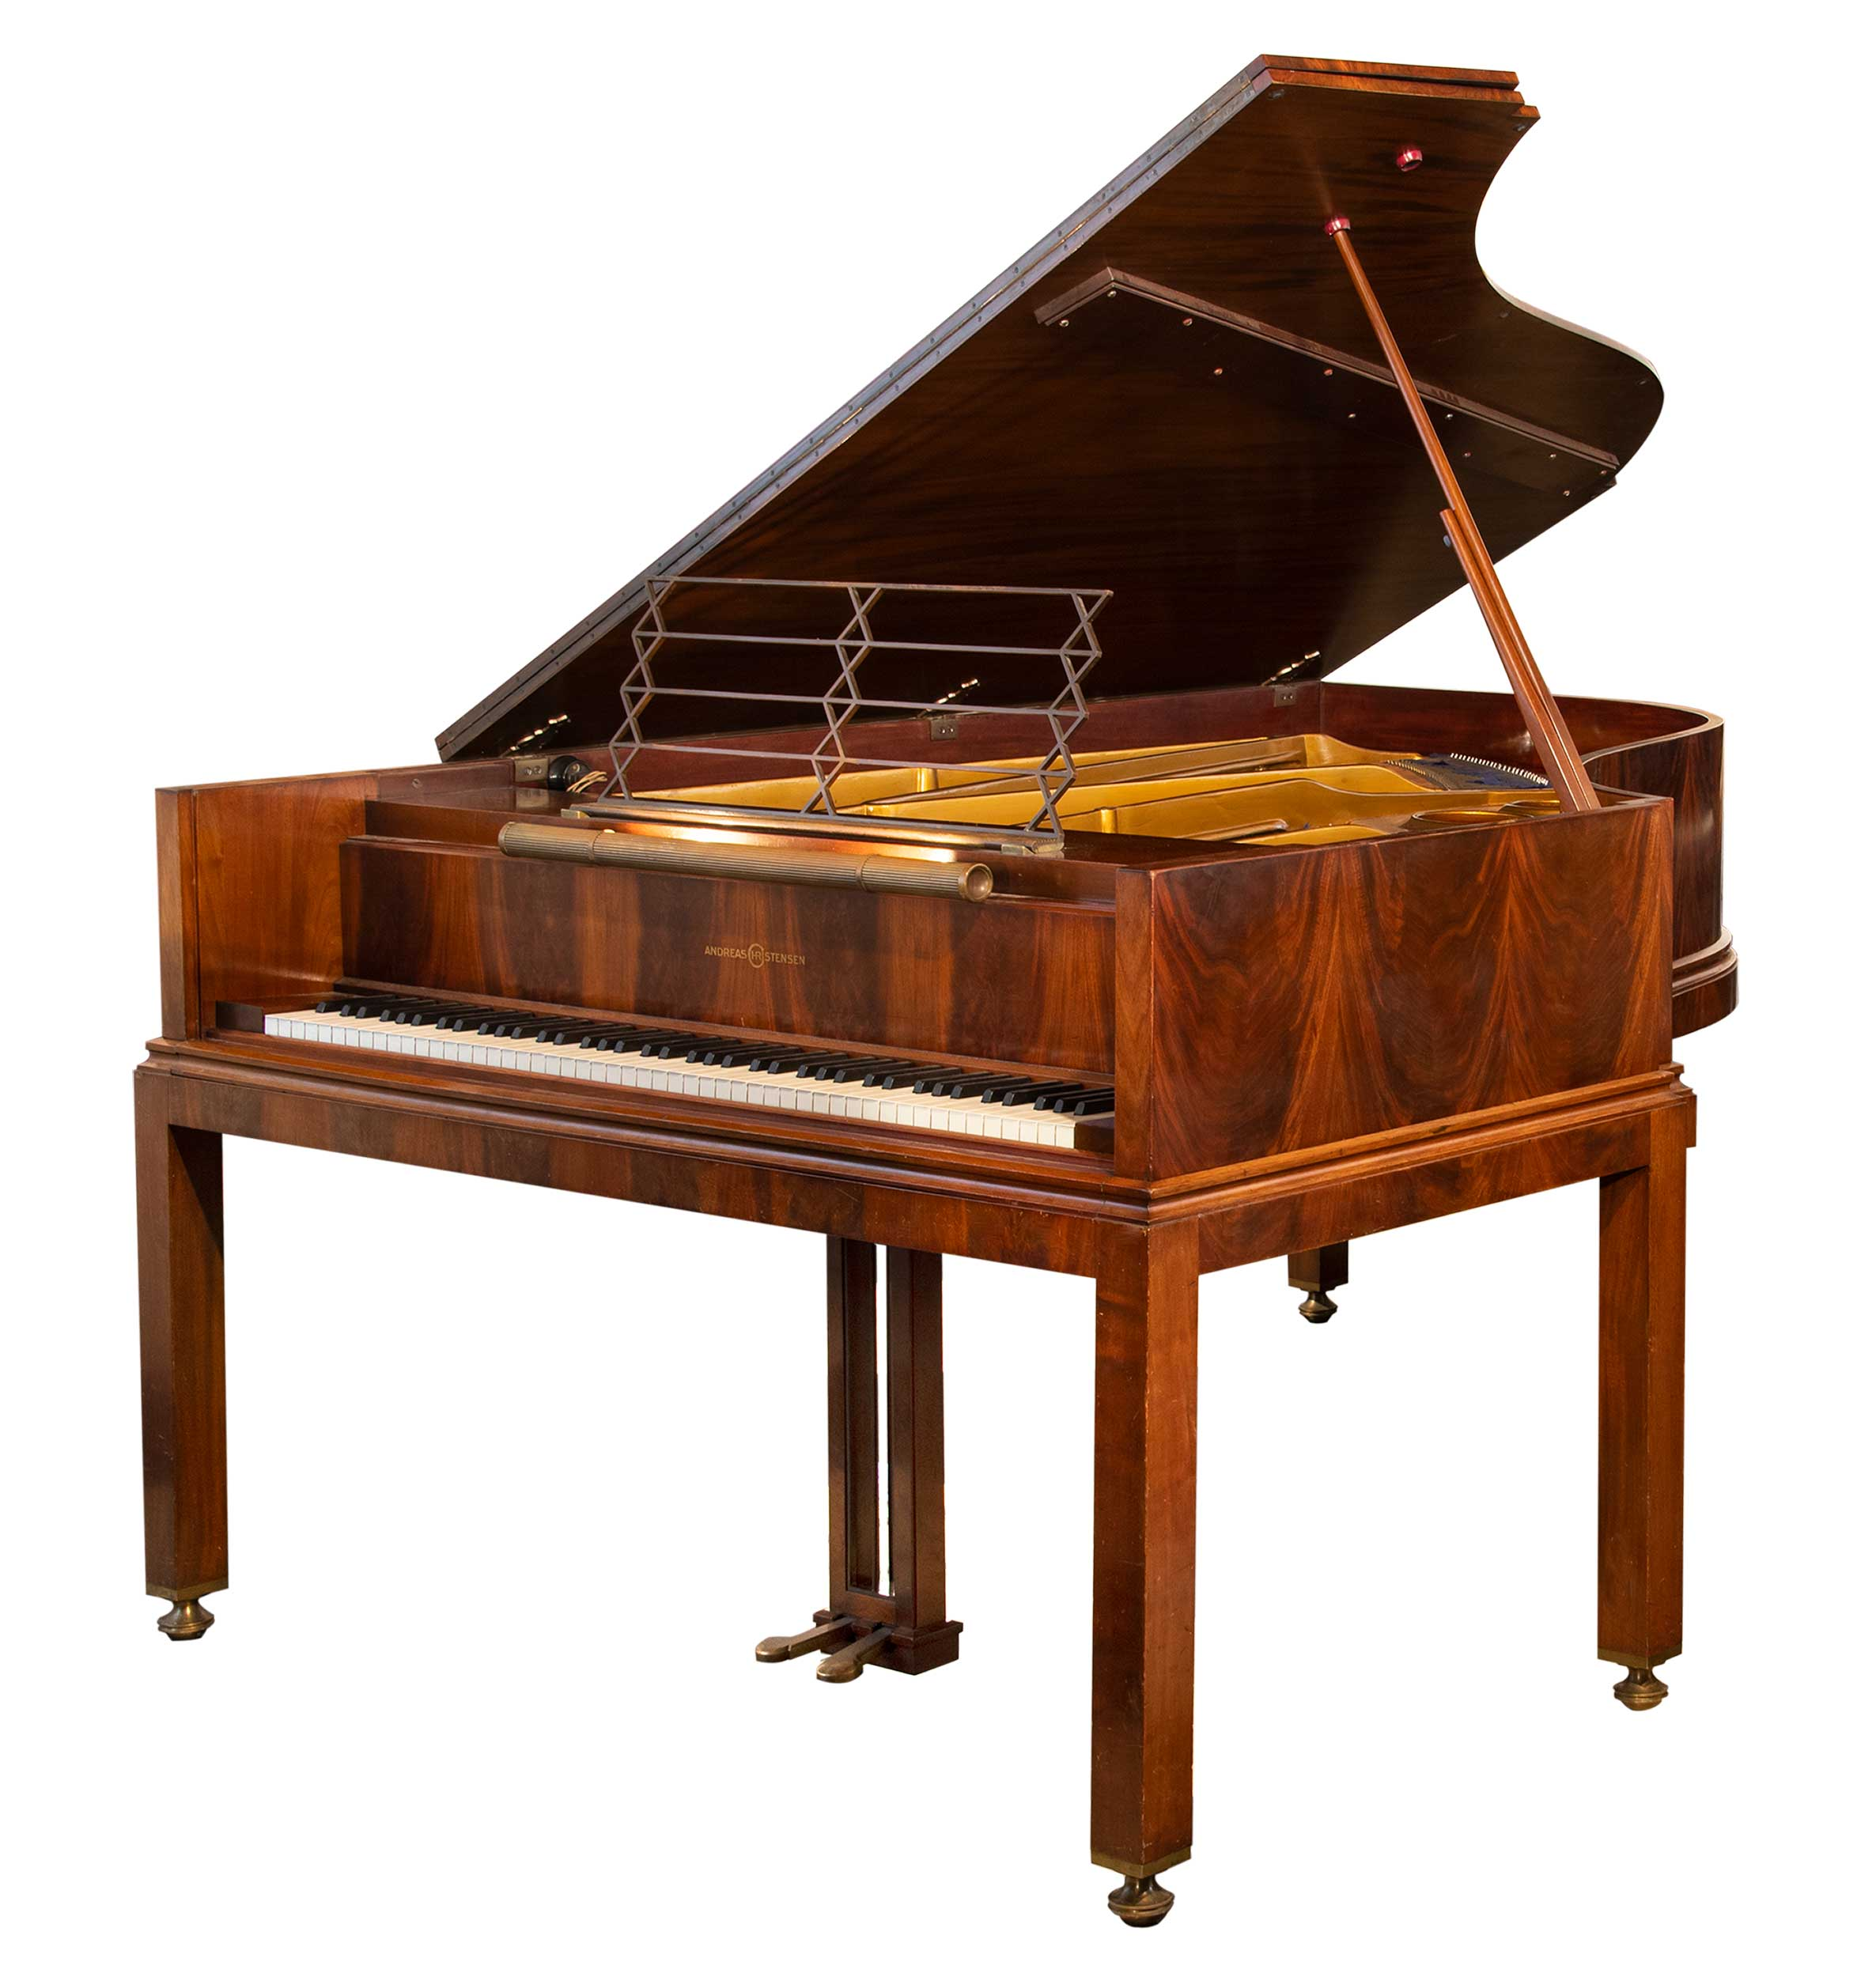 Art Deco piano, Andreas Christensen, Danish Modern, Modernist Style